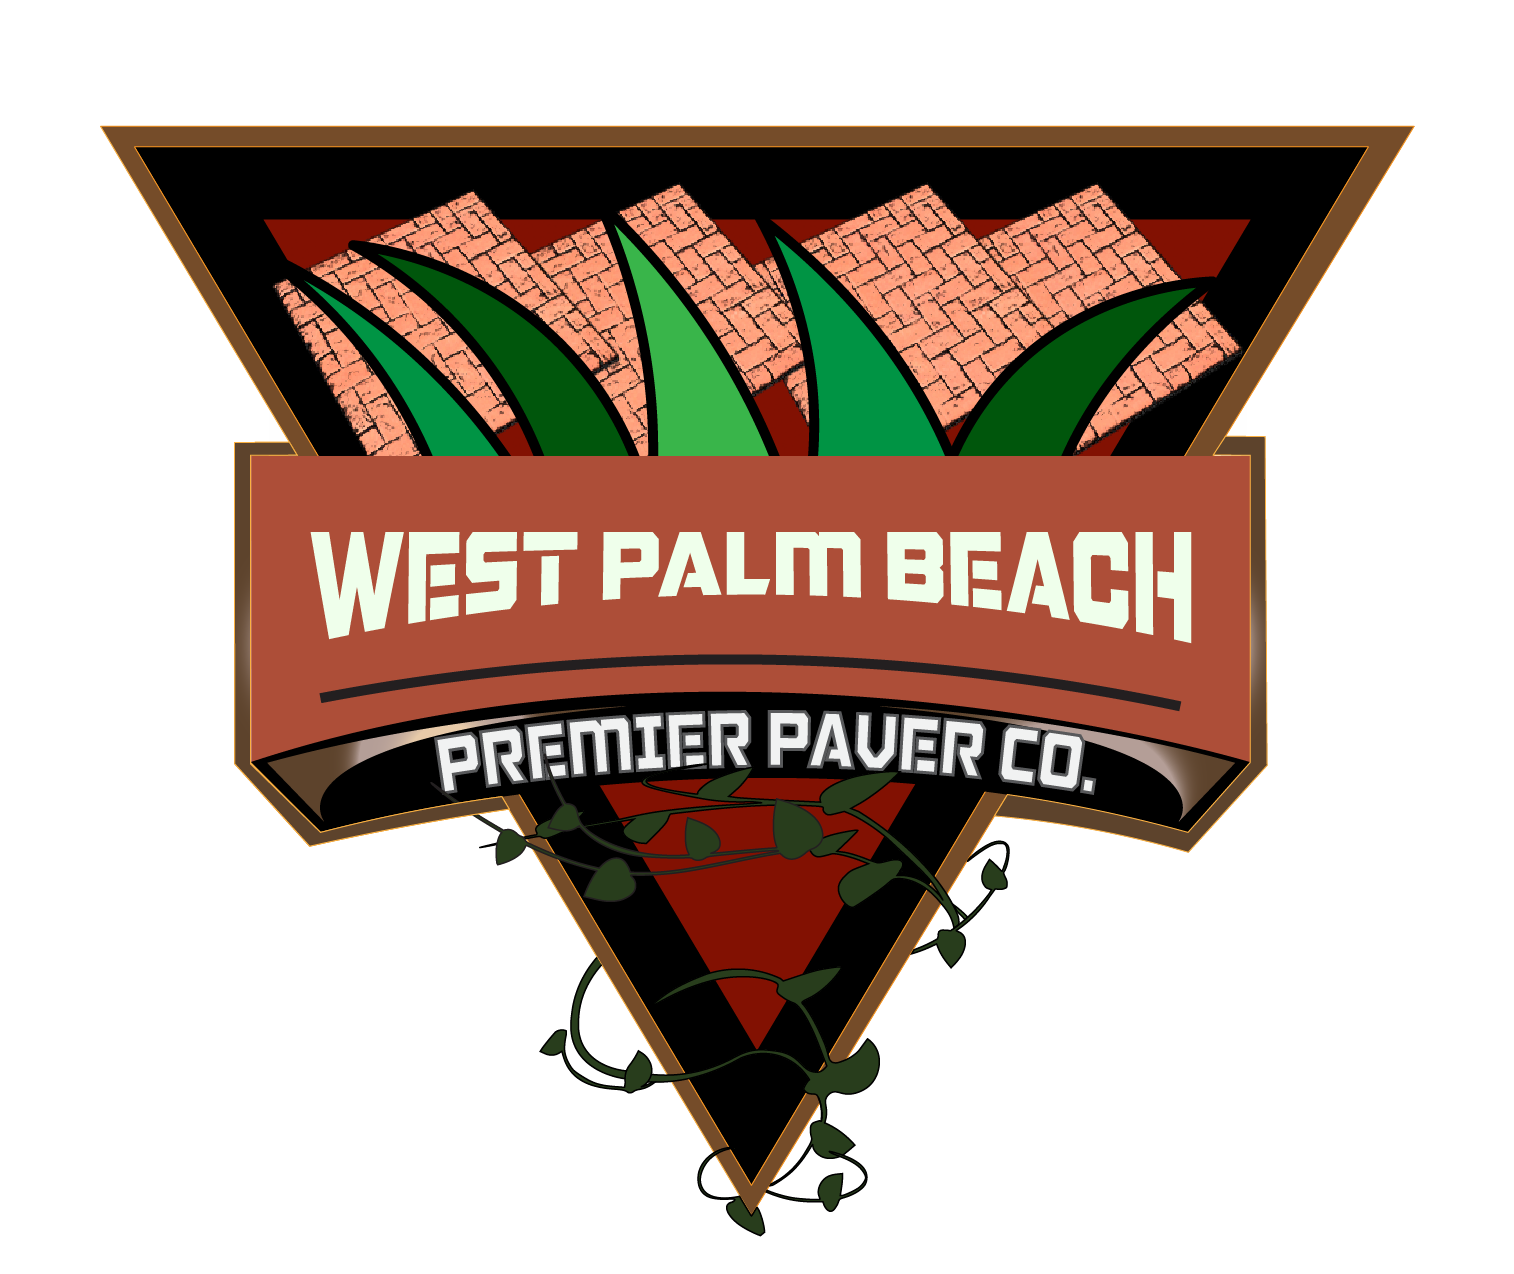 west palm beach pavers logo